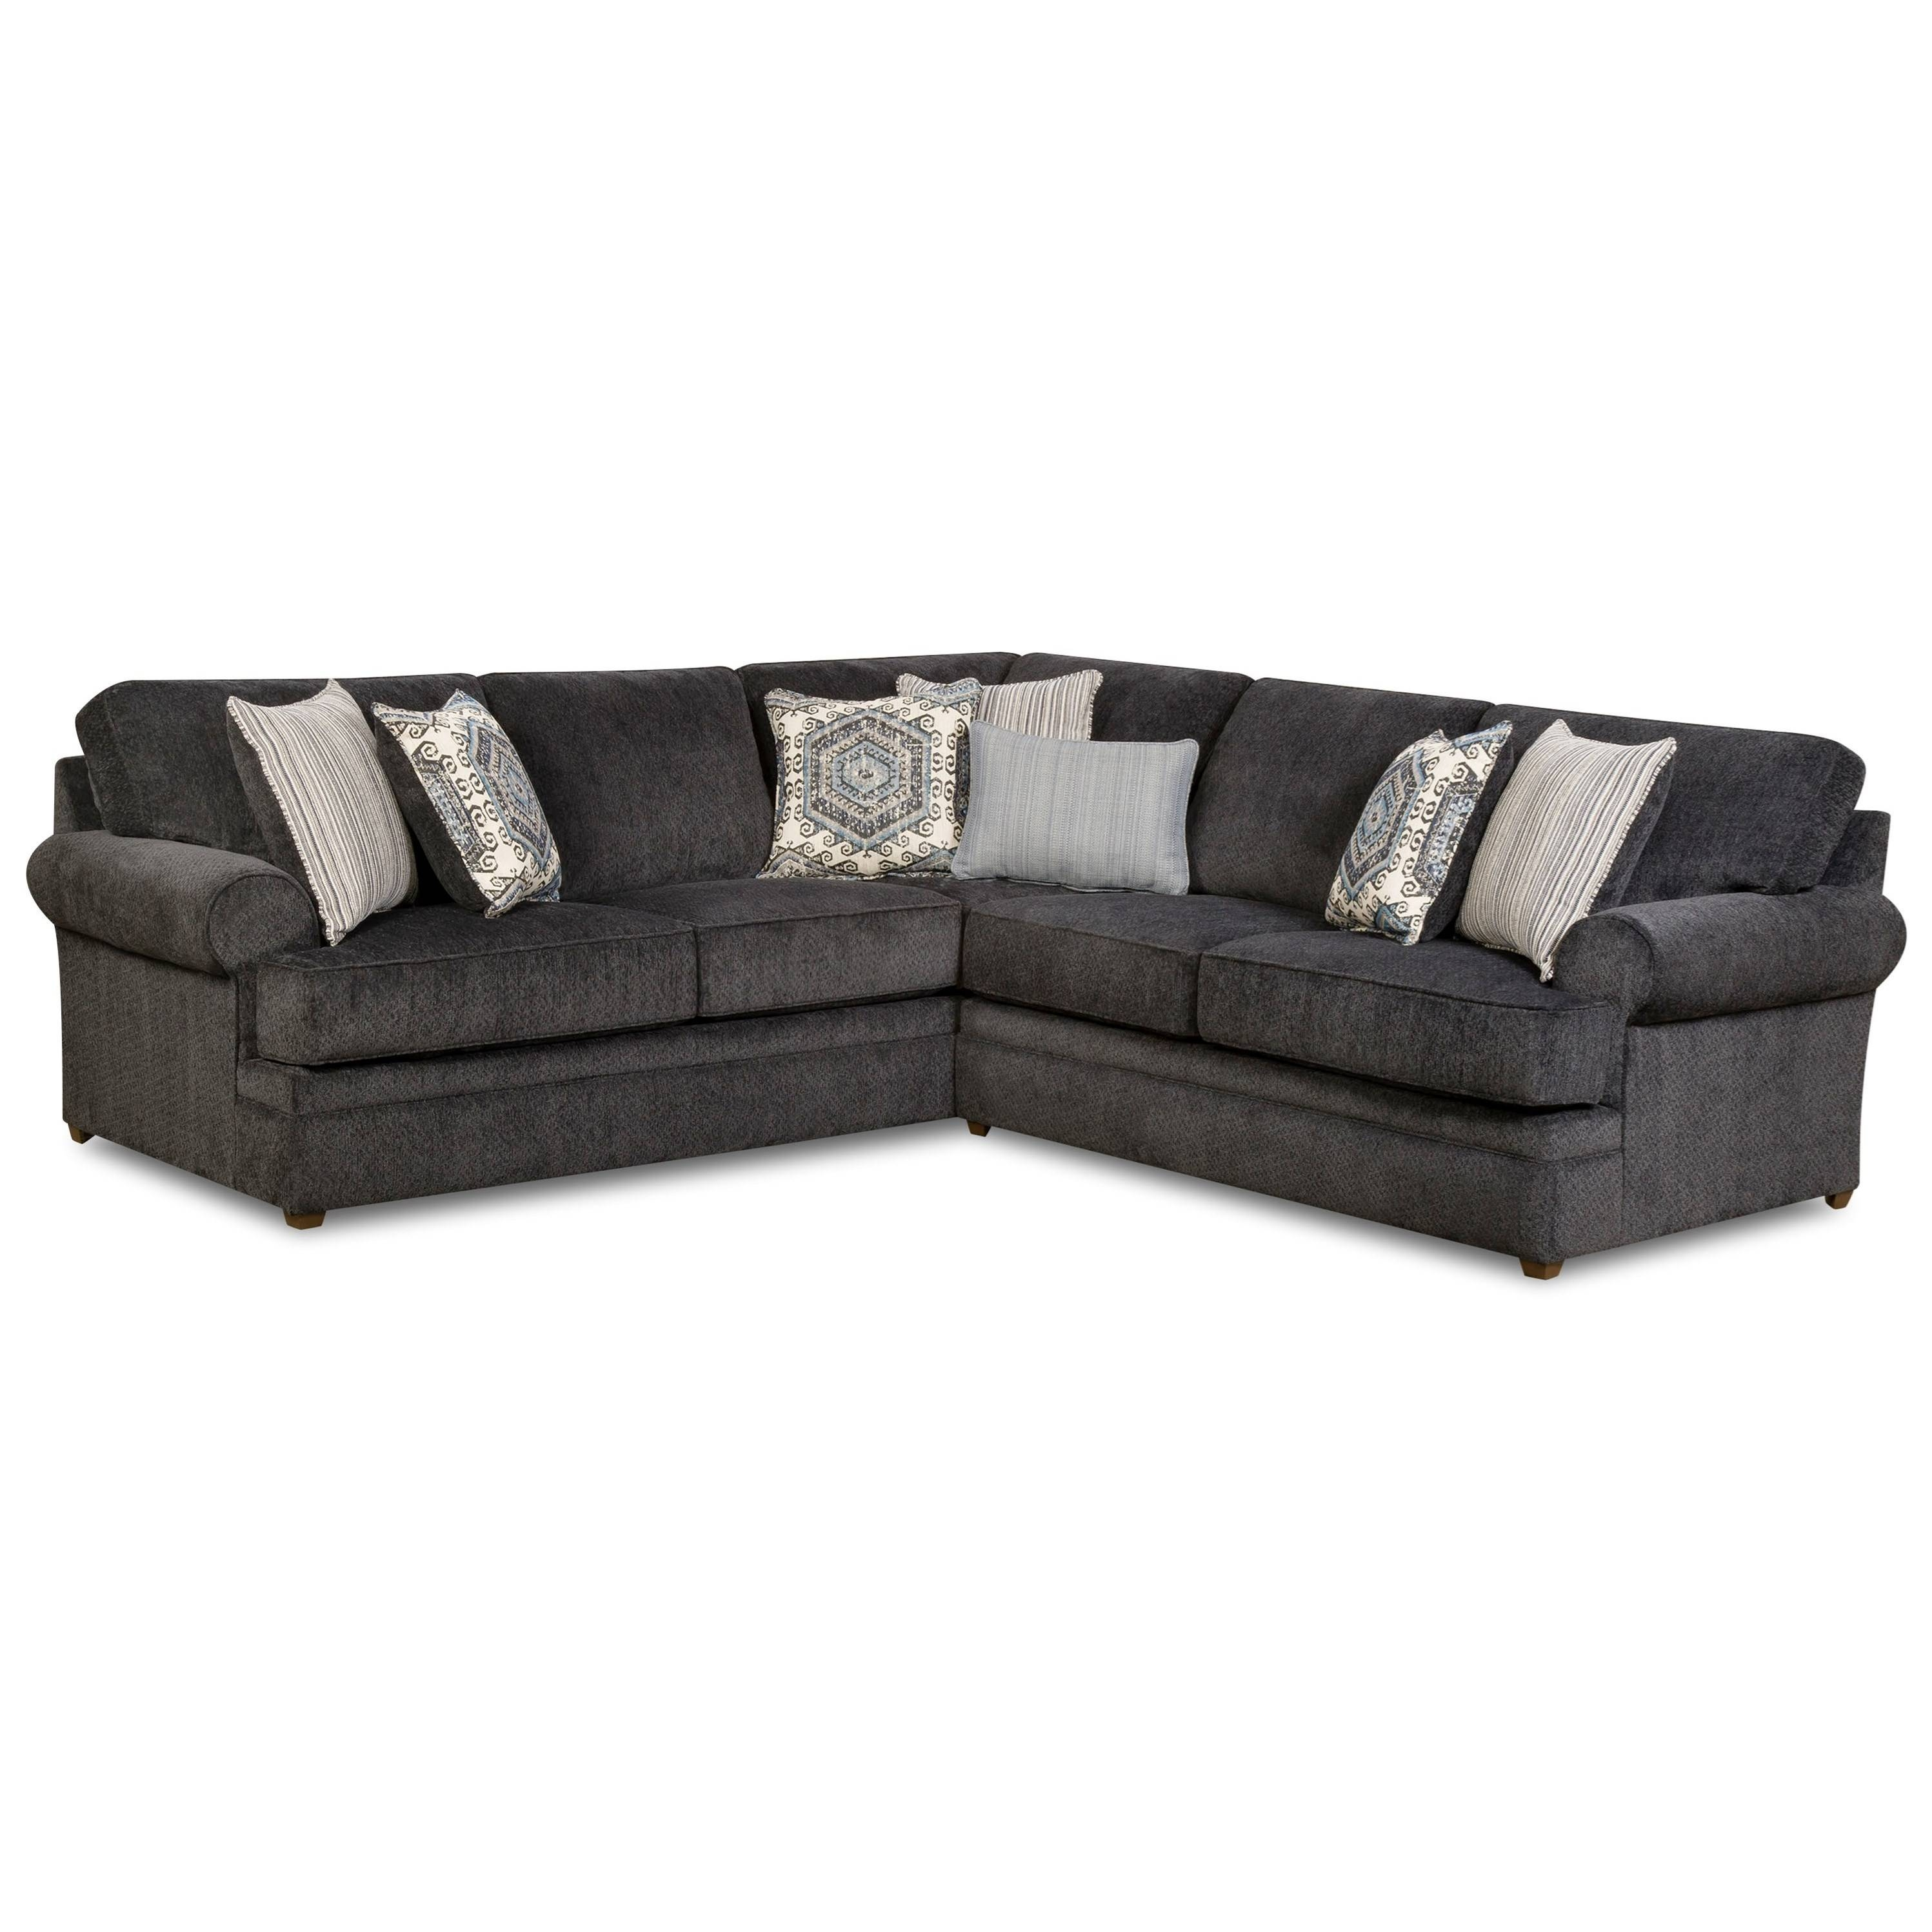 Simmons Upholstery 8530 Br Transitional Sectional Sofa With Rolled inside Simmons Sofas (Image 11 of 15)